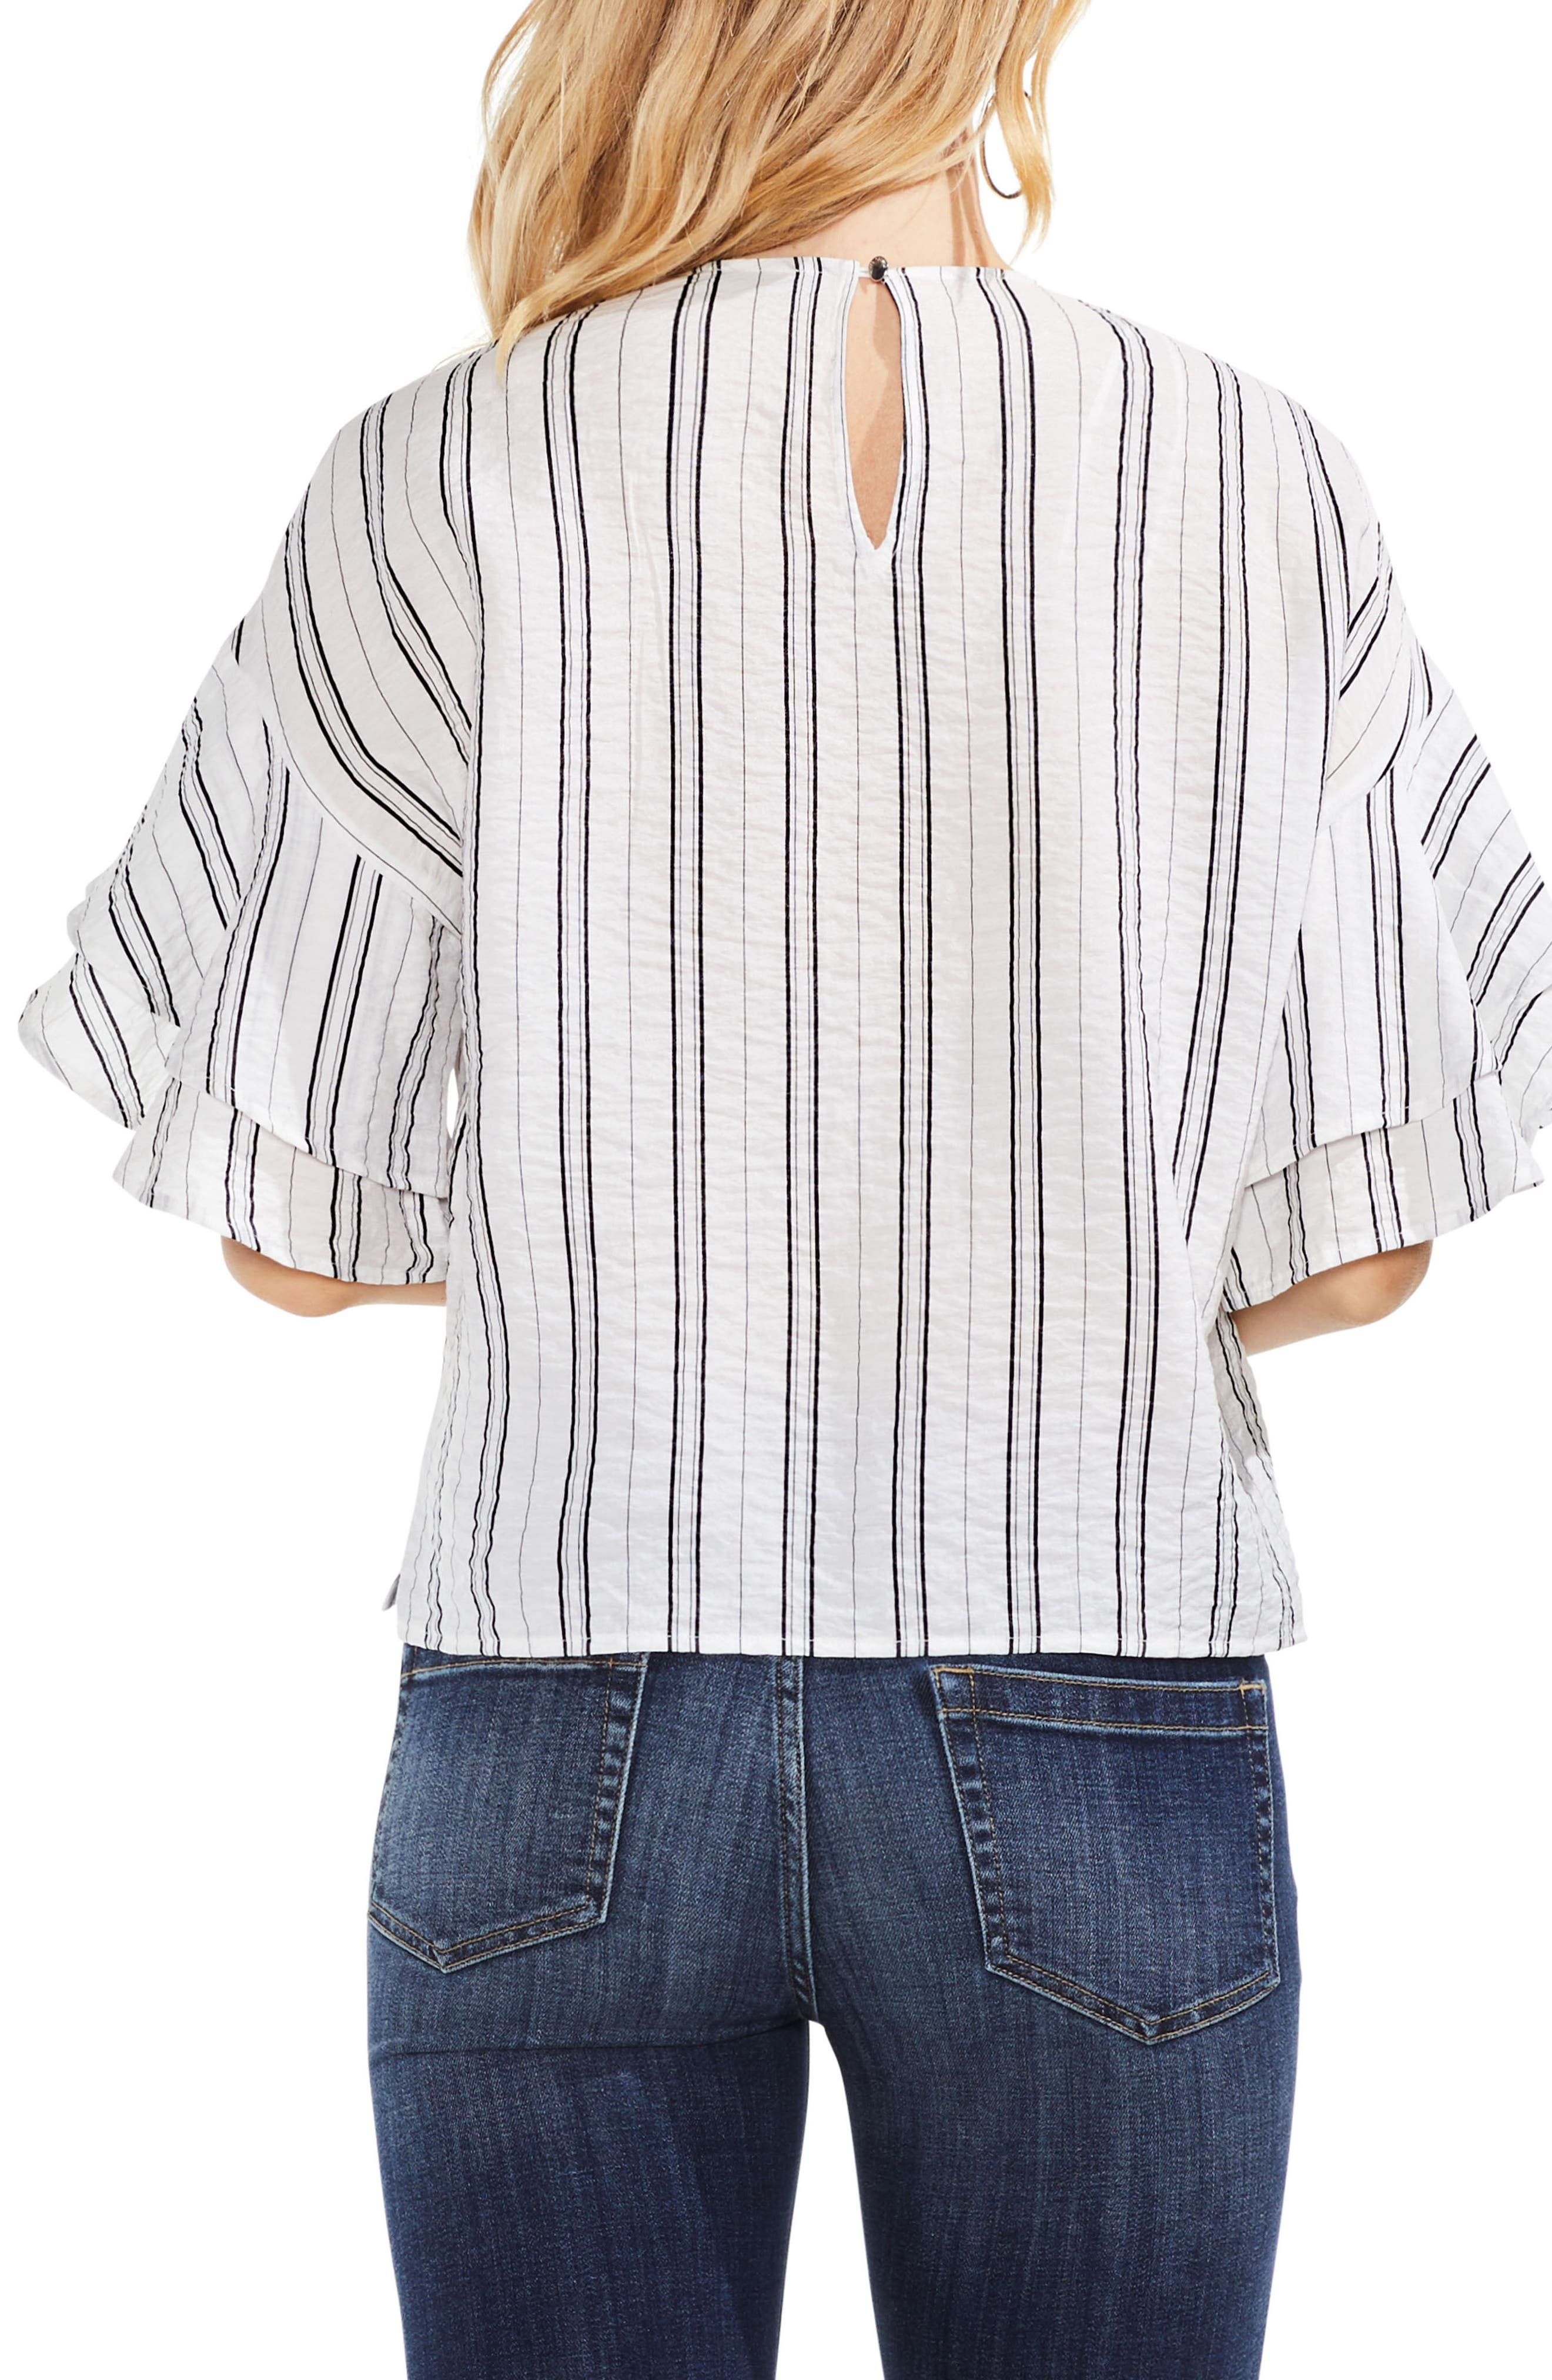 Tiered Ruffle Sleeve Stripe Blouse,                             Alternate thumbnail 2, color,                             103